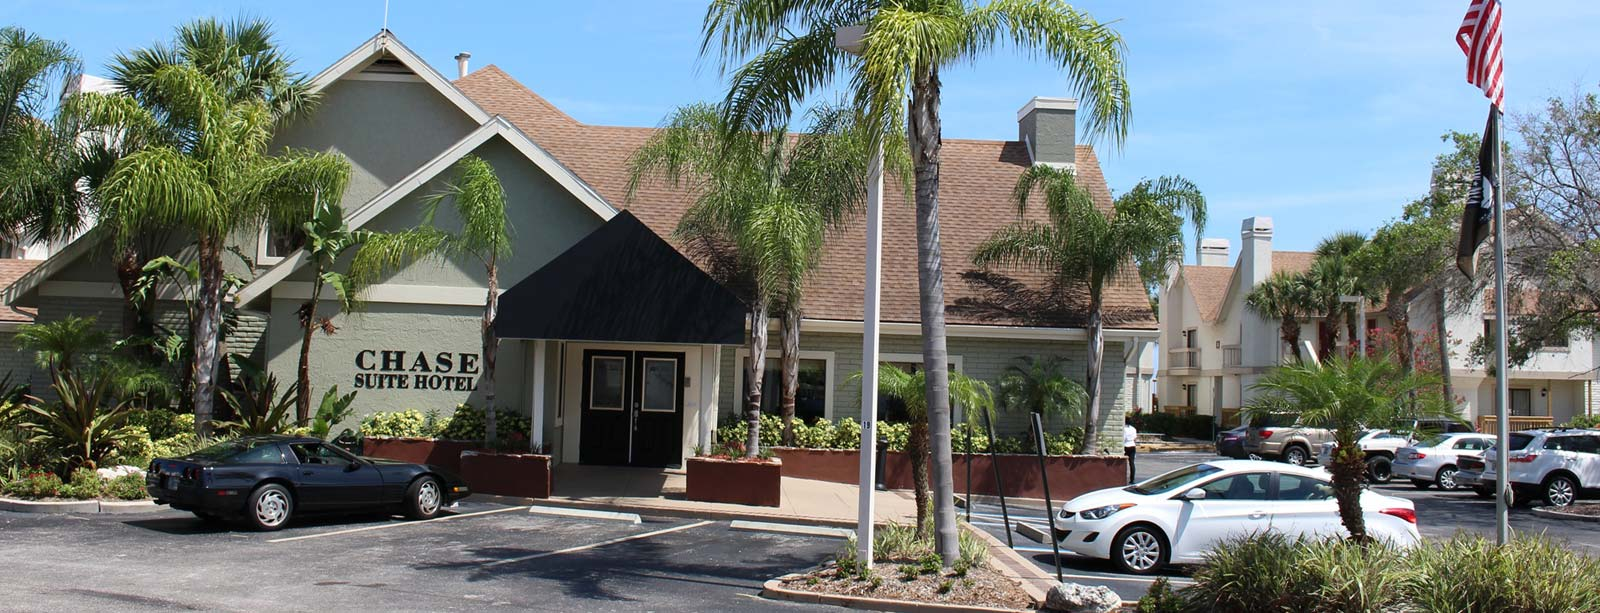 Hotels In Tampa >> Rocky Point Tampa Fl Hotels Chase Suite Hotel Tampa